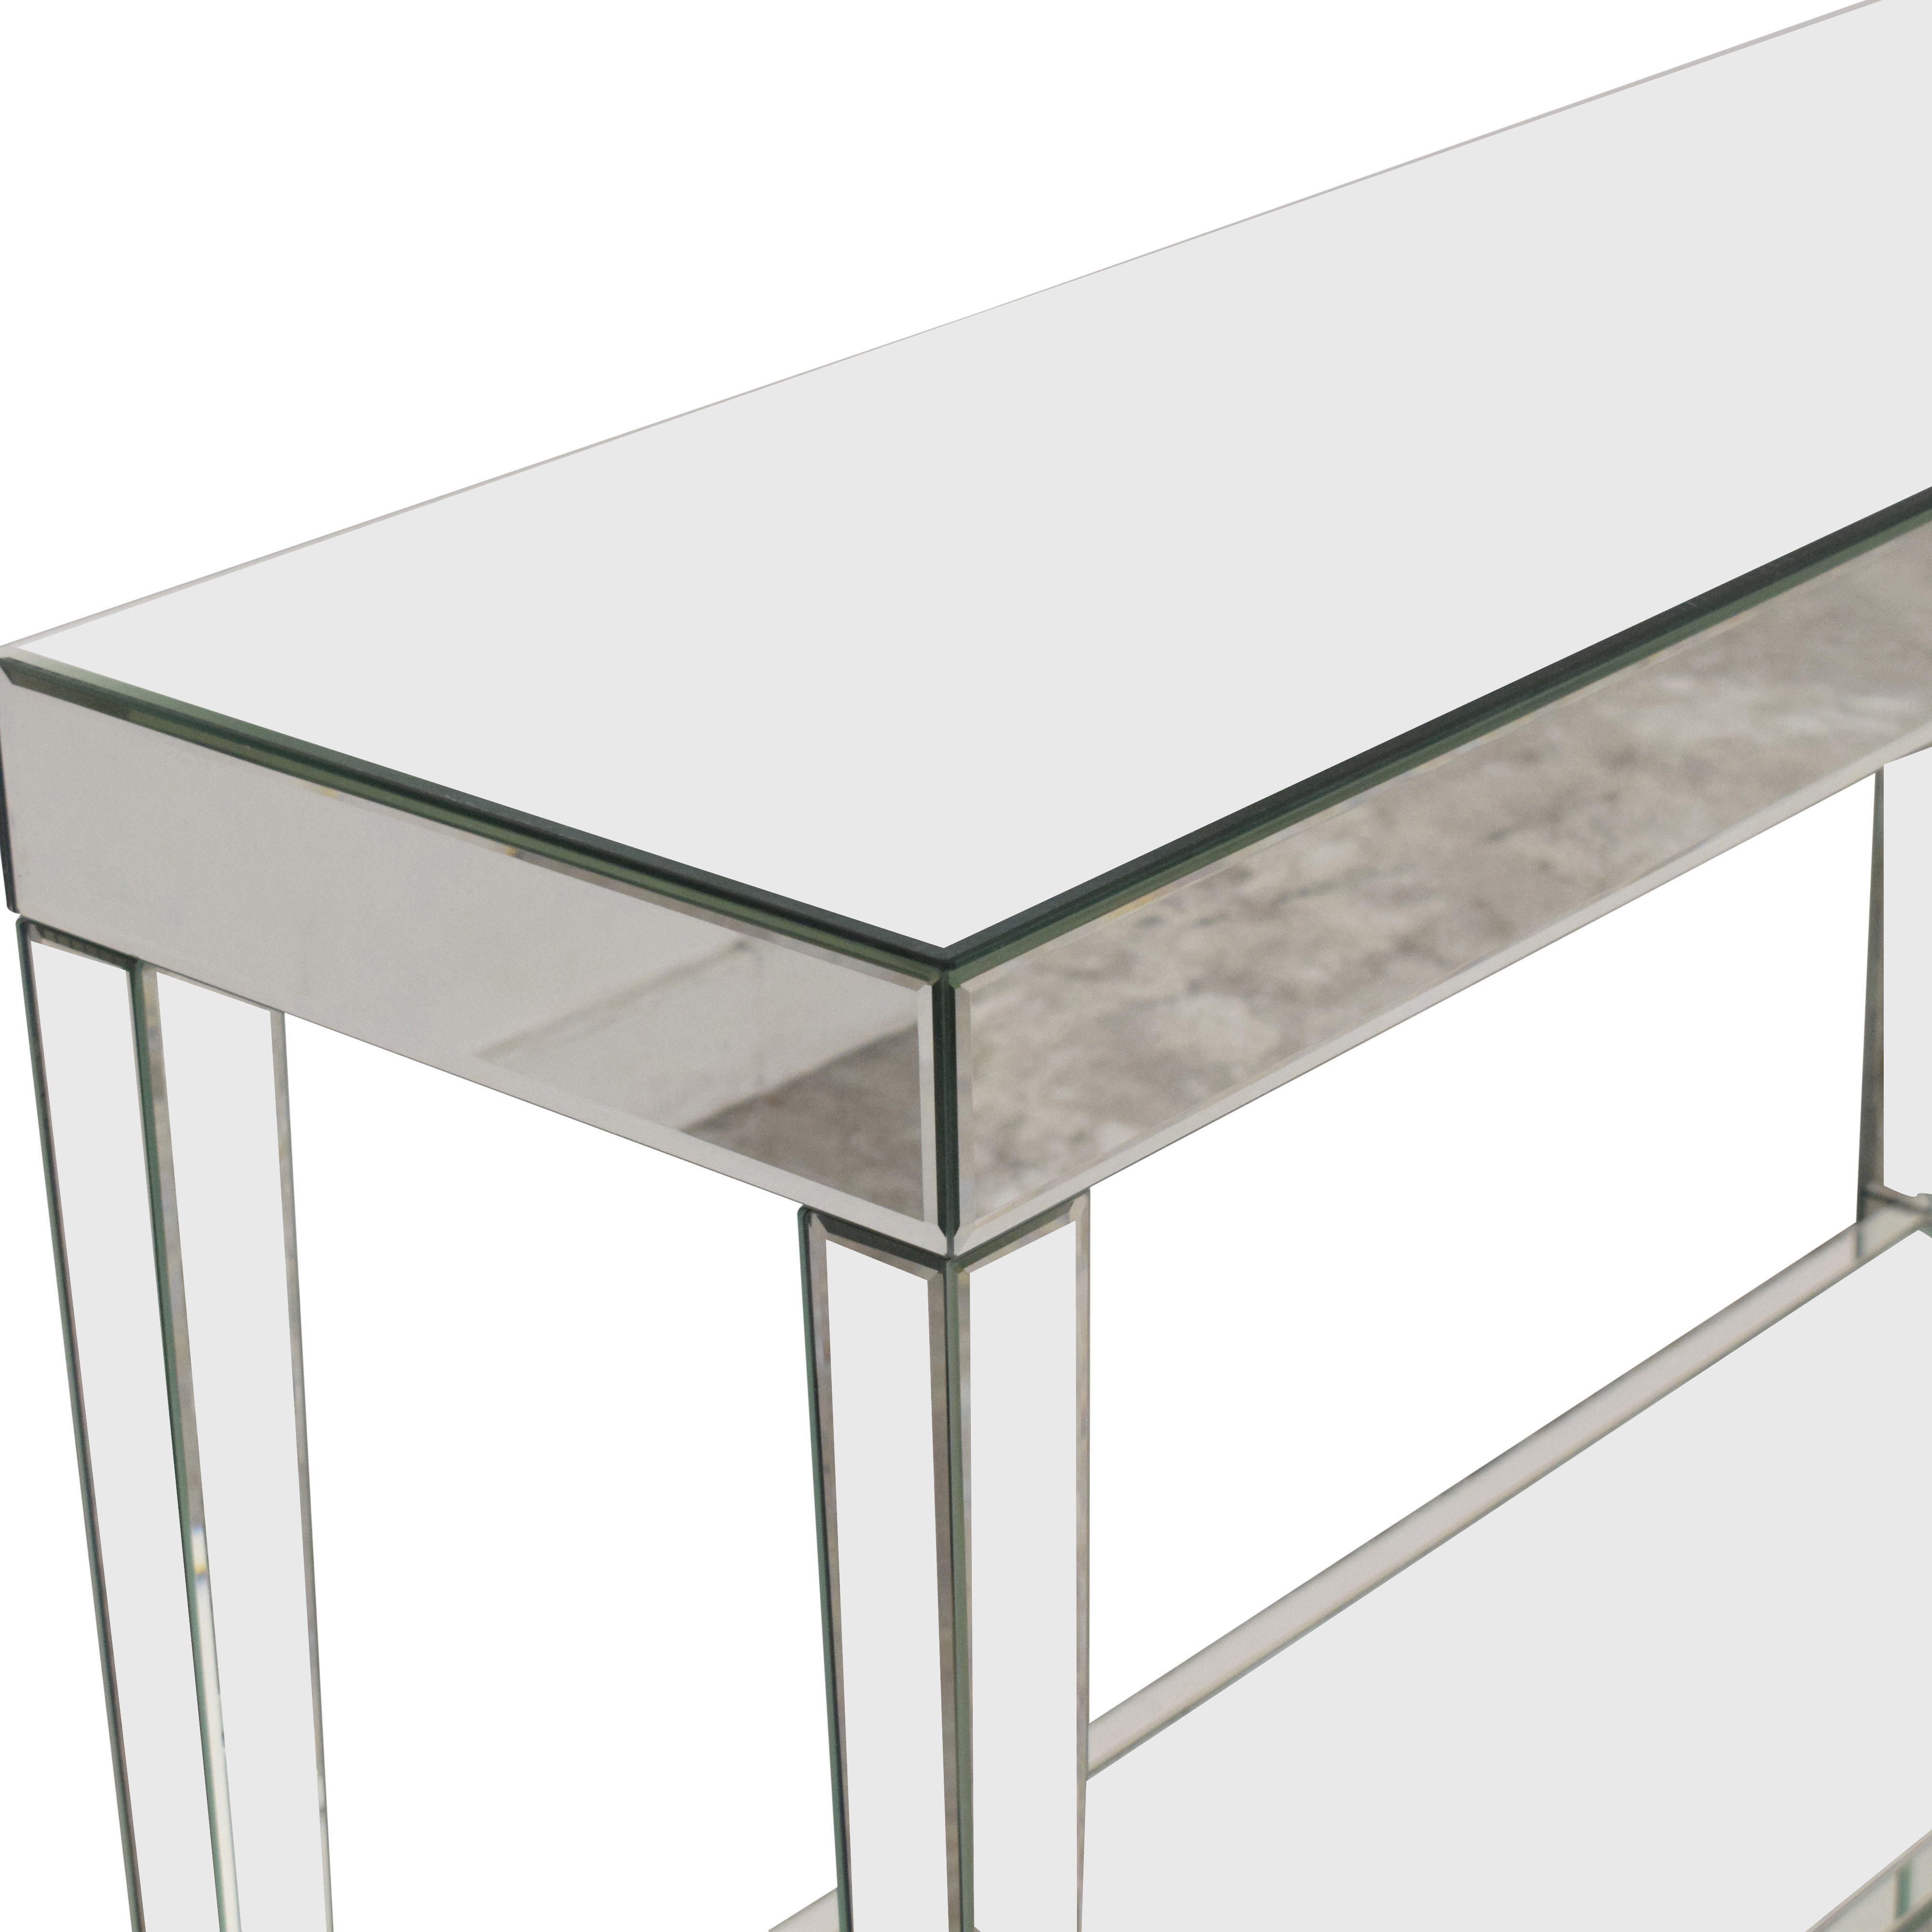 Howard Elliot Collection Howard Elliott Orion Mirrored Console Table With Shelf dimensions